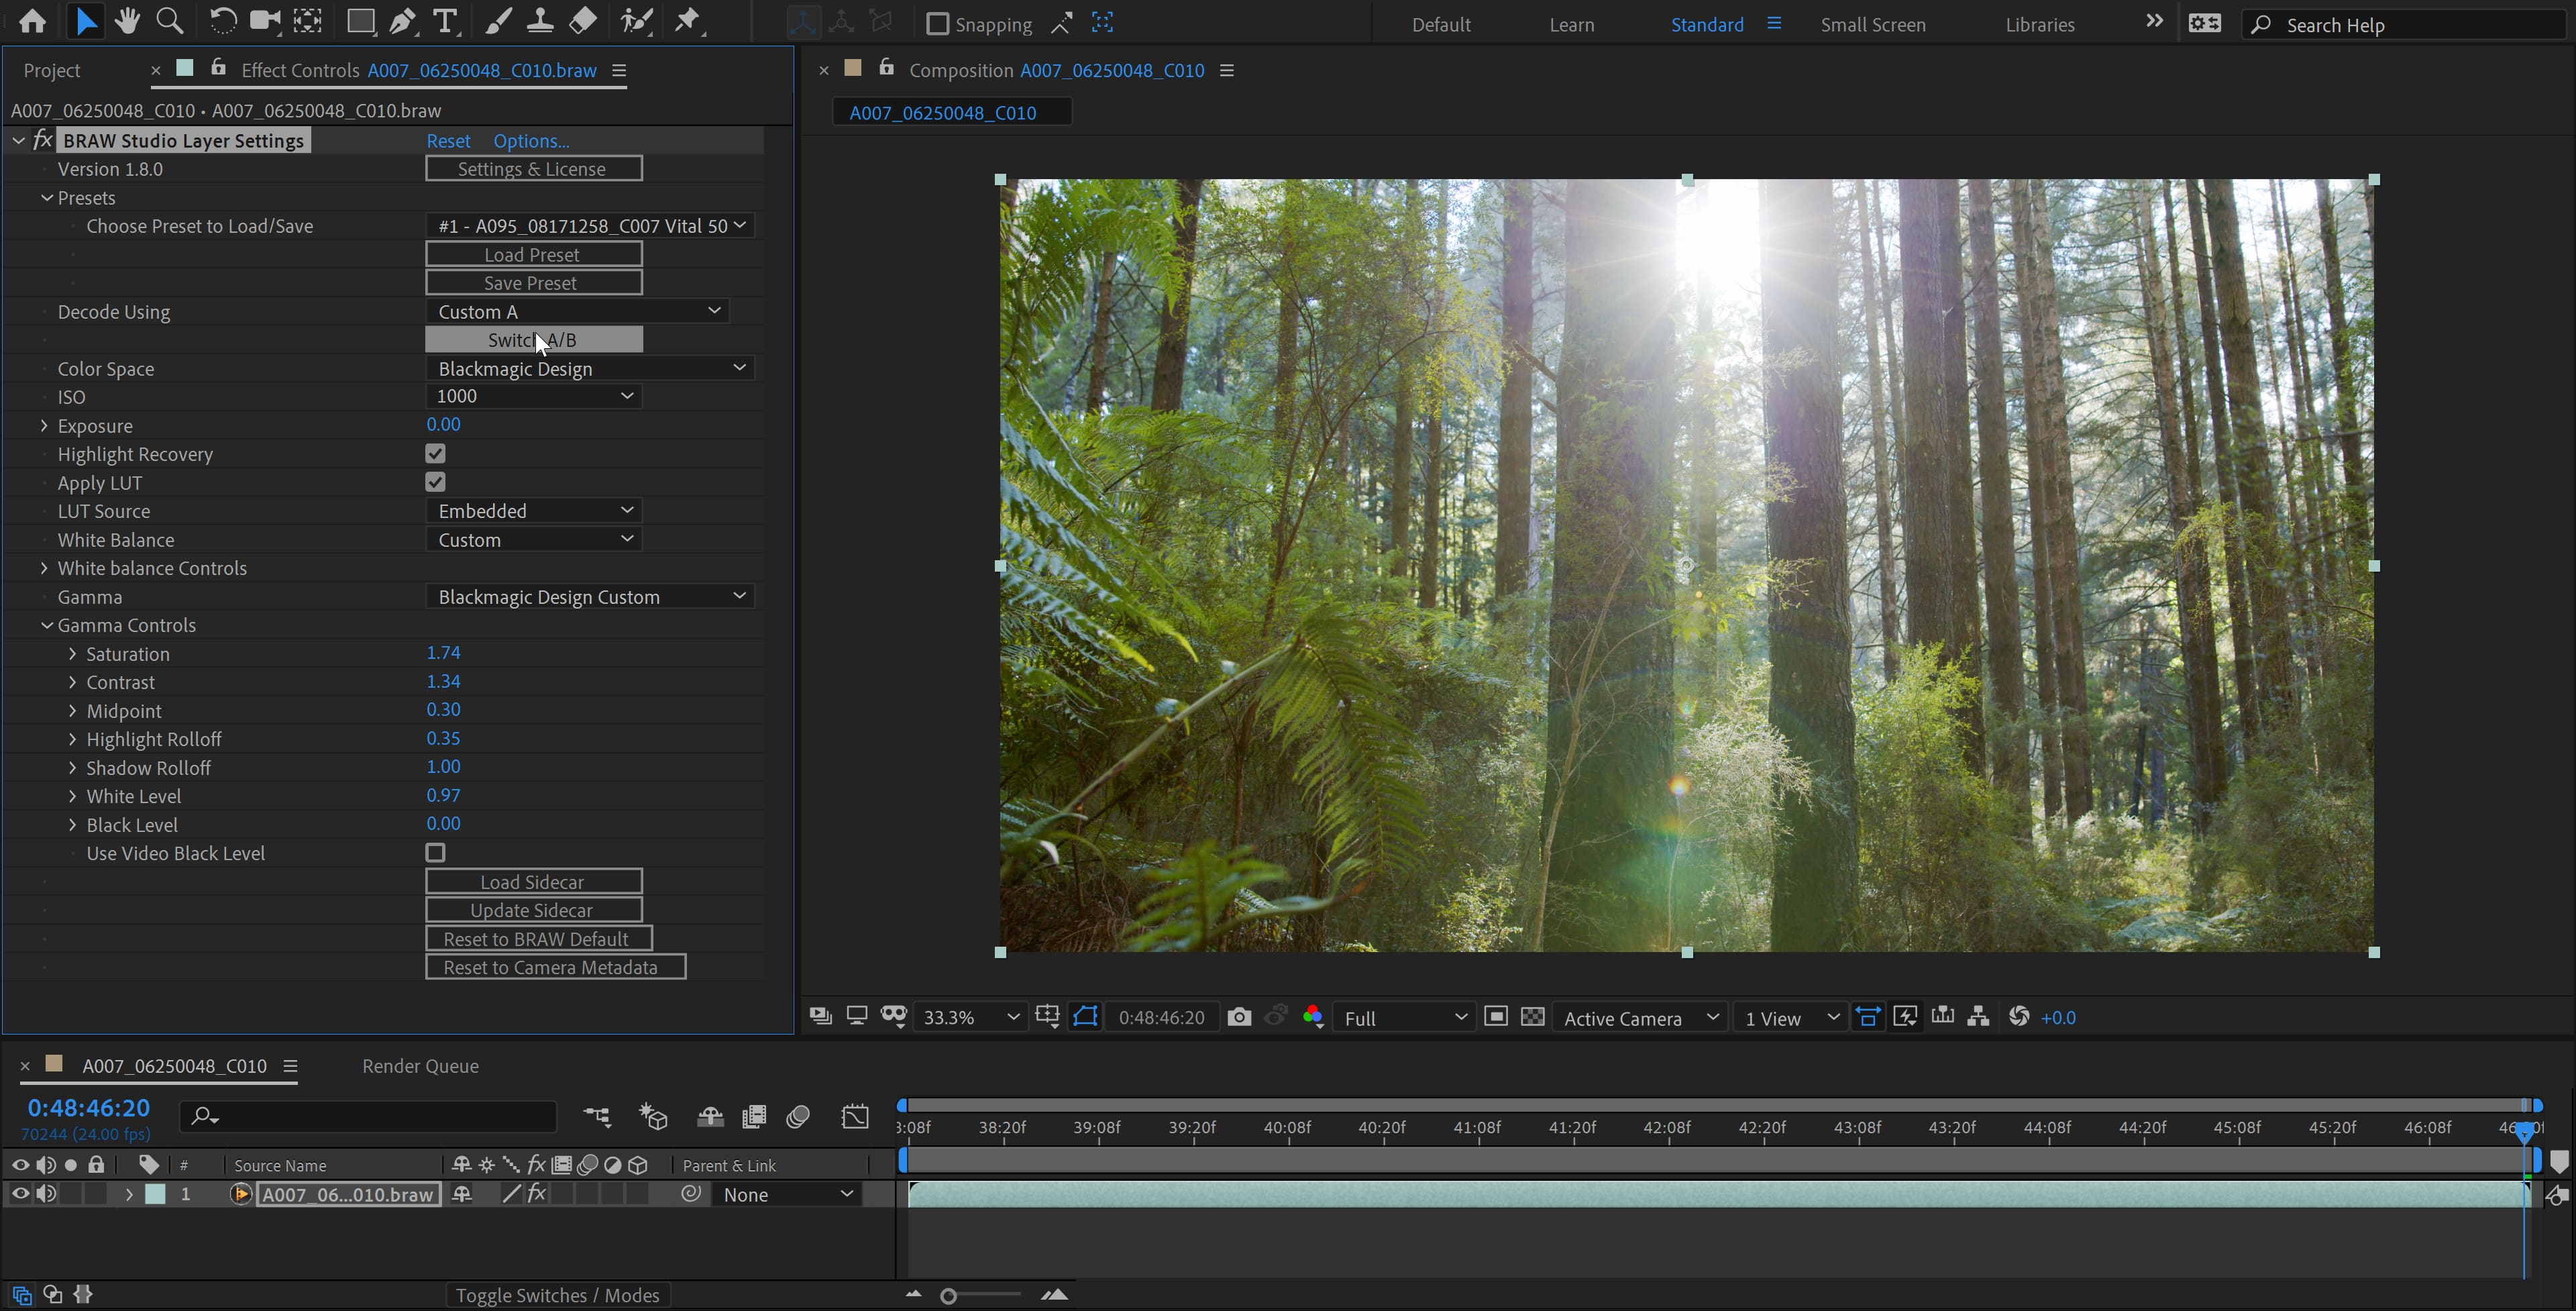 BRAW Studio for Adobe After Effects on Microsoft Windows (Blackmagic RAW importer plugin screenshot)